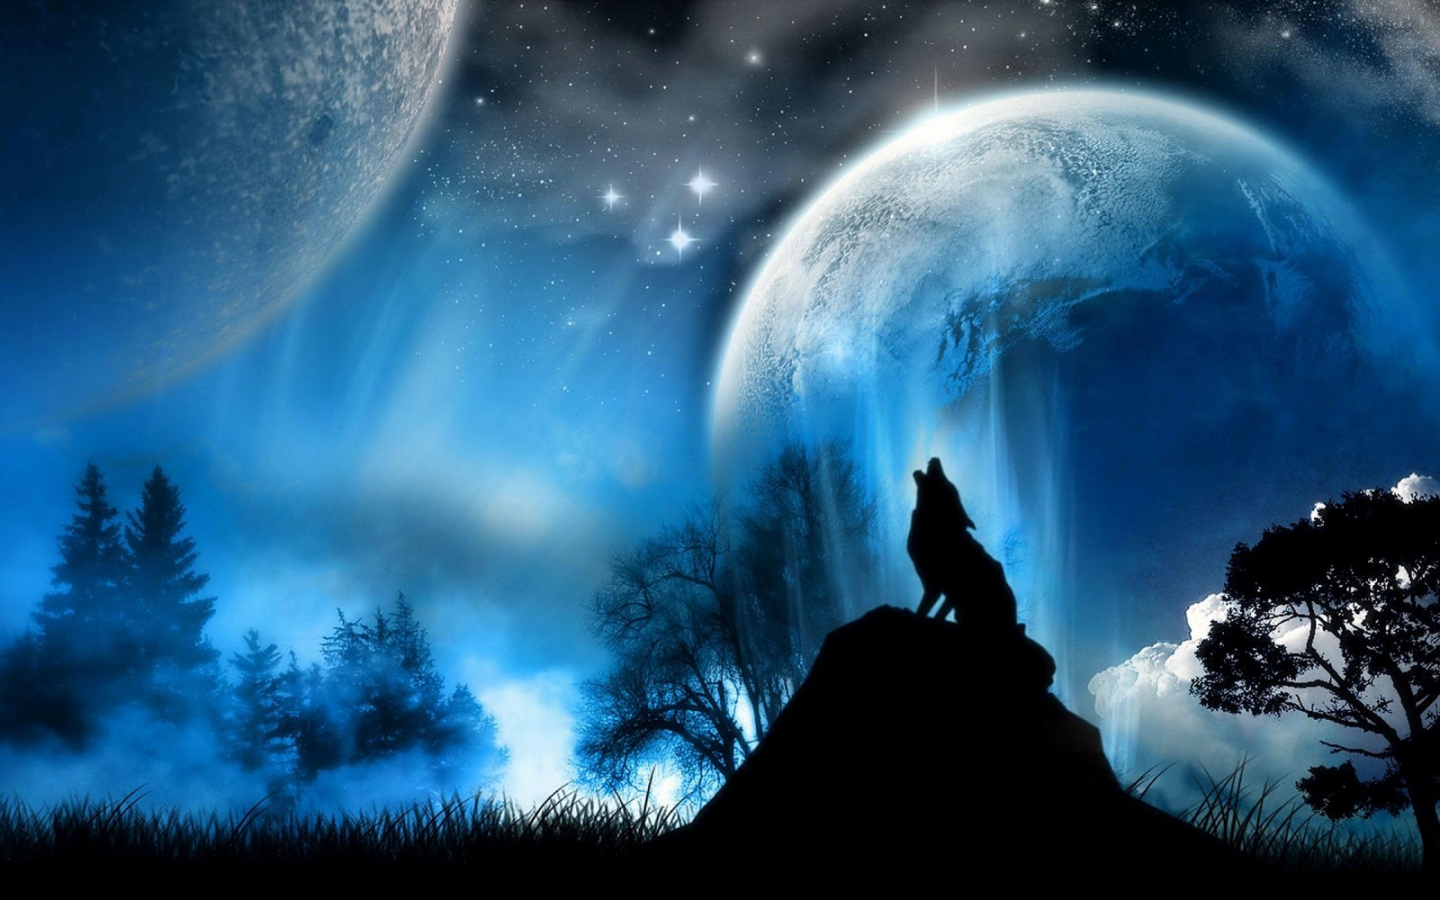 Free Download Bedroom Glow In The Dark Paint Interior Design Living Room Ideas 1600x1000 For Your Desktop Mobile Tablet Explore 50 Wolf Wallpaper For Bedroom Wolf Wallpaper Wolf Wallpaper